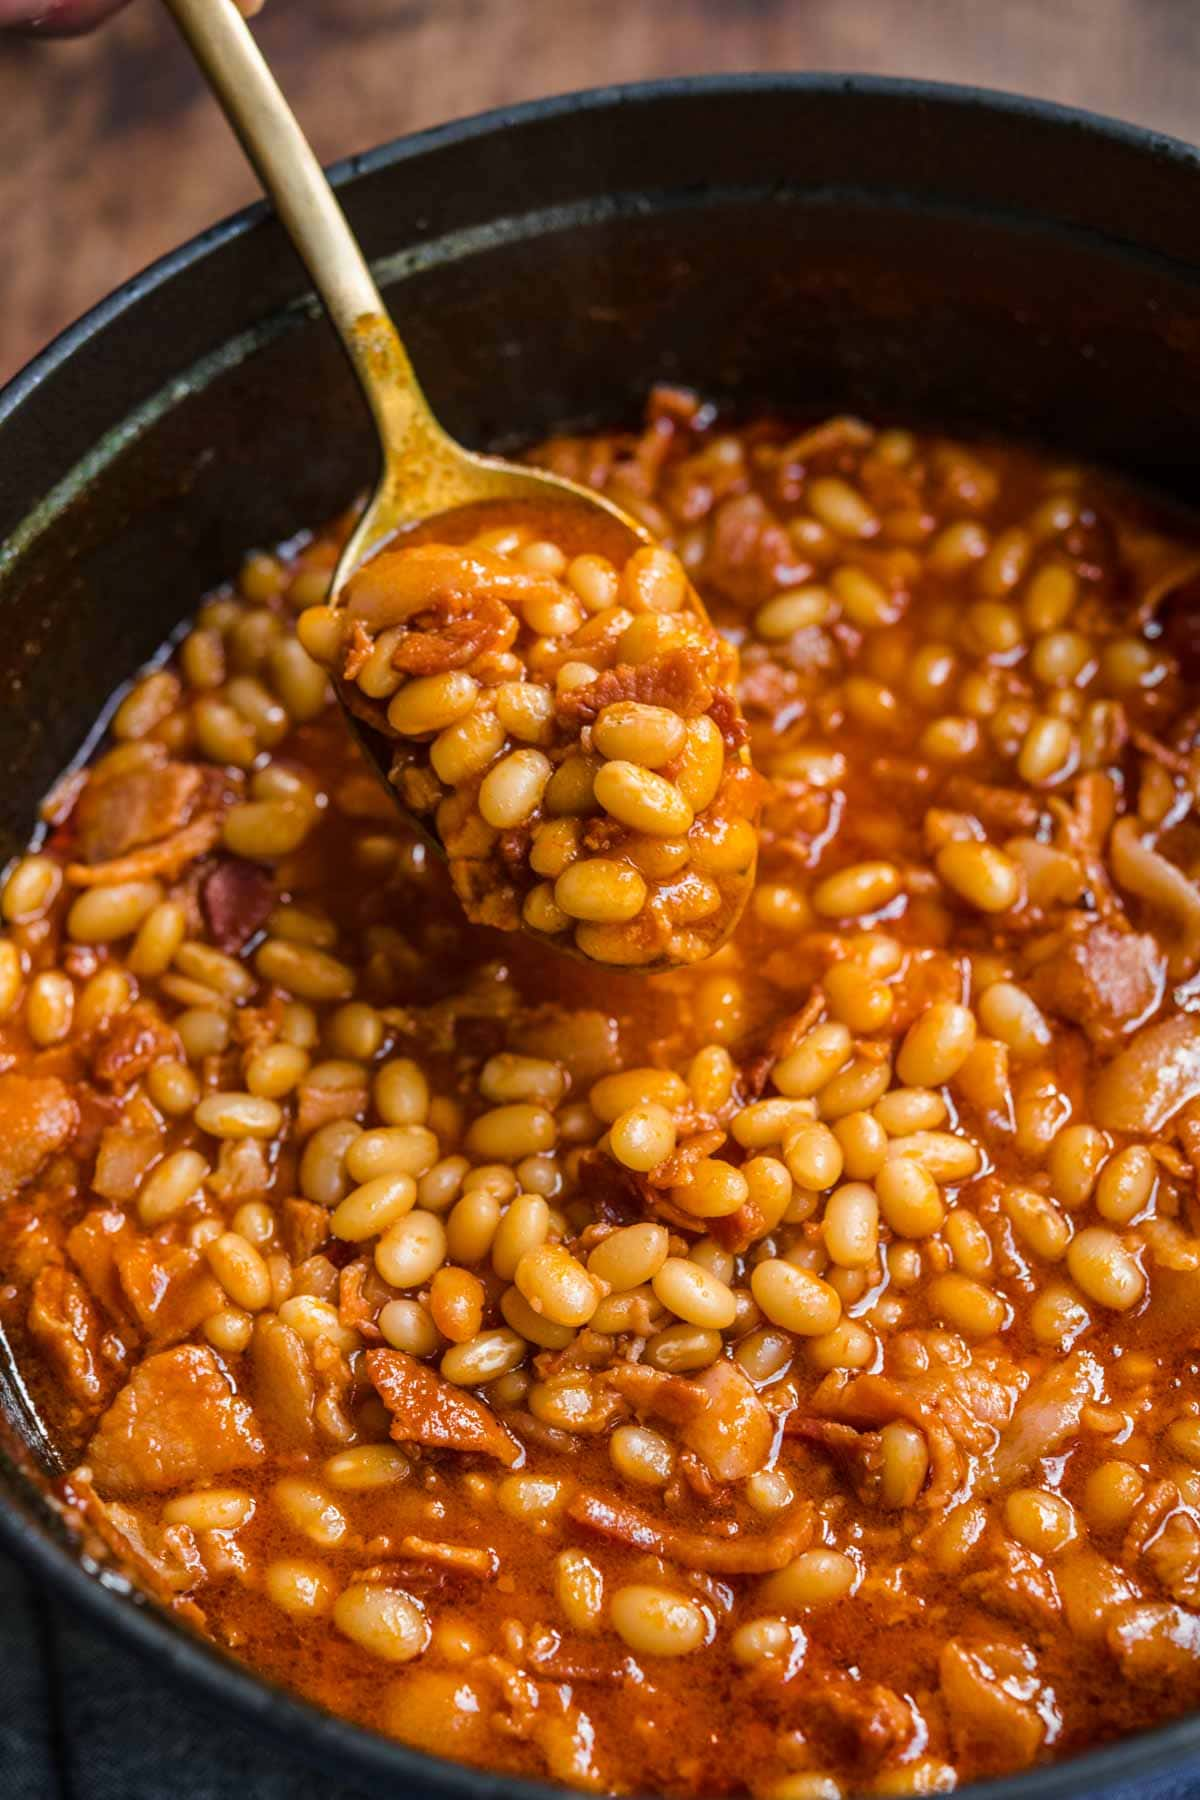 Homemade Pork and Beans with bacon and sauce in pot with spoon